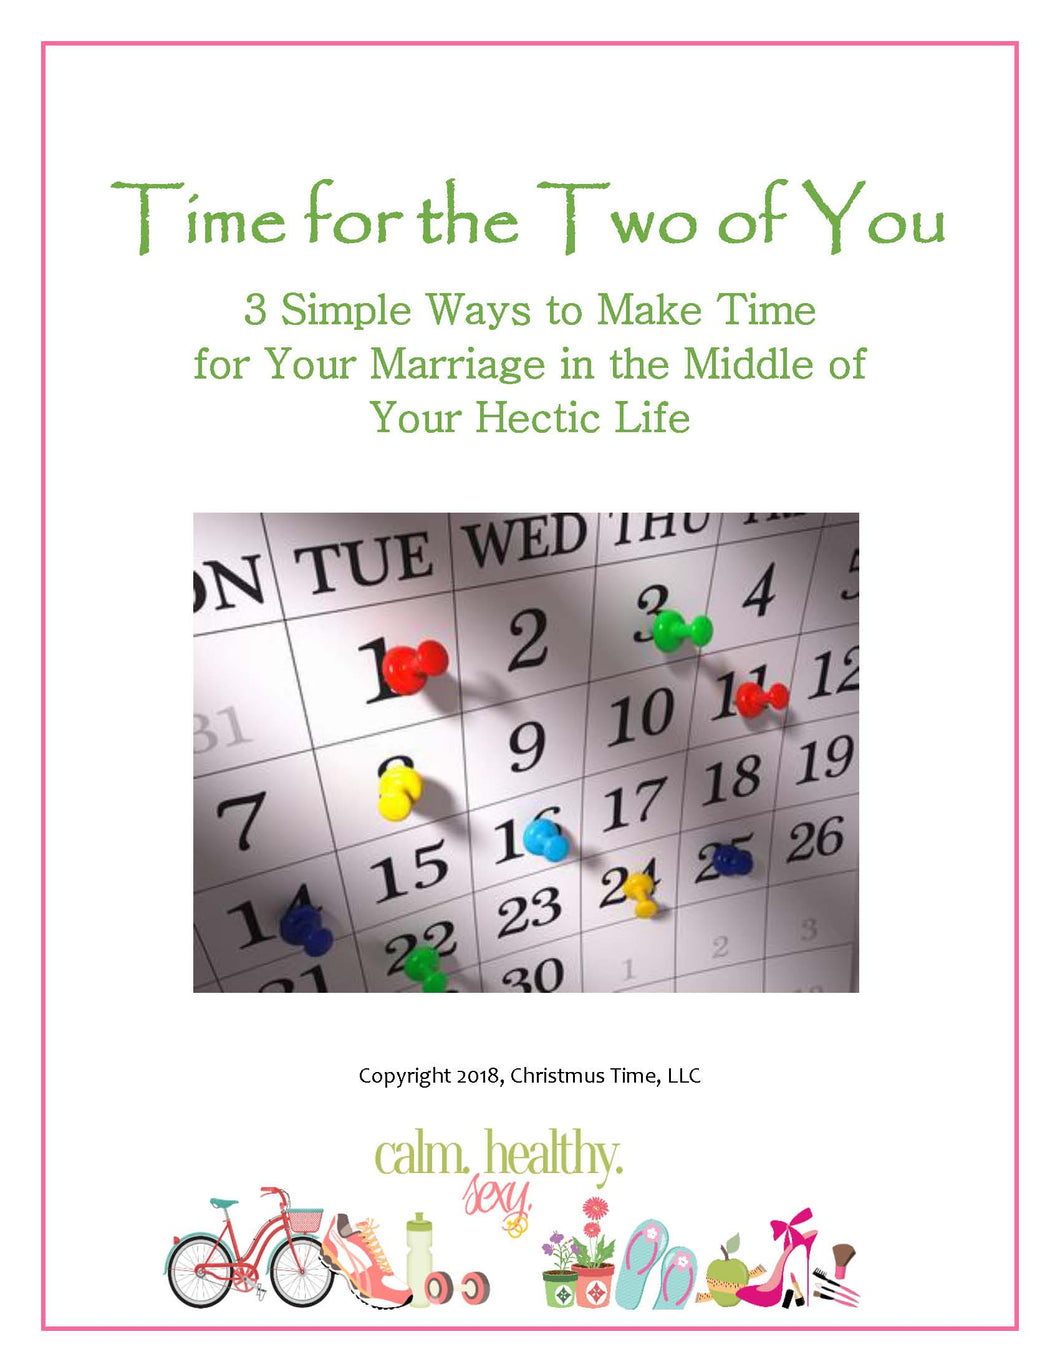 Time for the Two of You - 3 Simple Ways to Make Time for Your Marriage